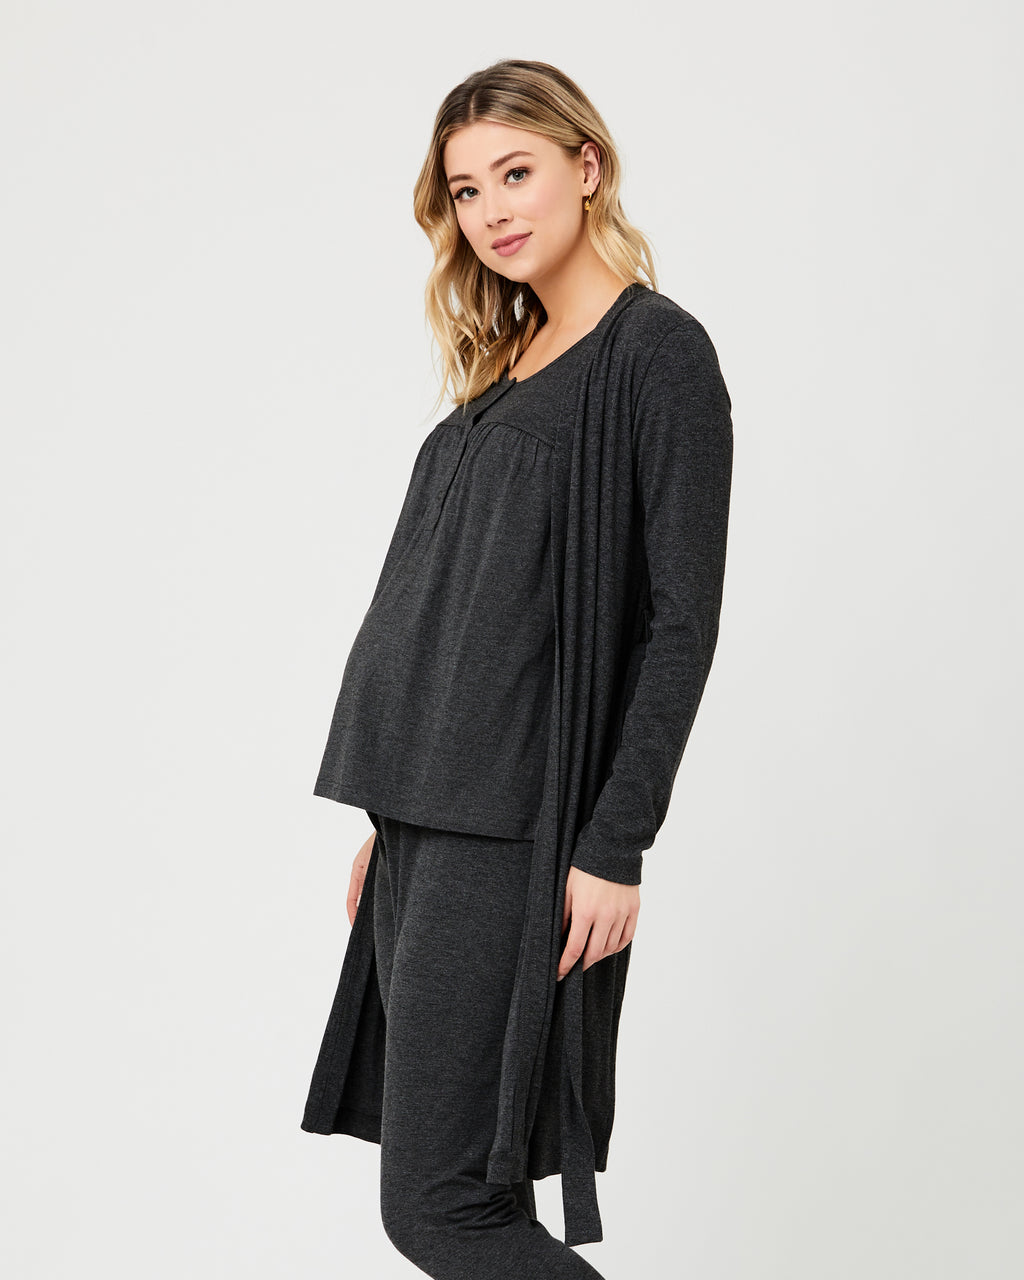 Jersey Robe - Nursing & Maternity Clothes